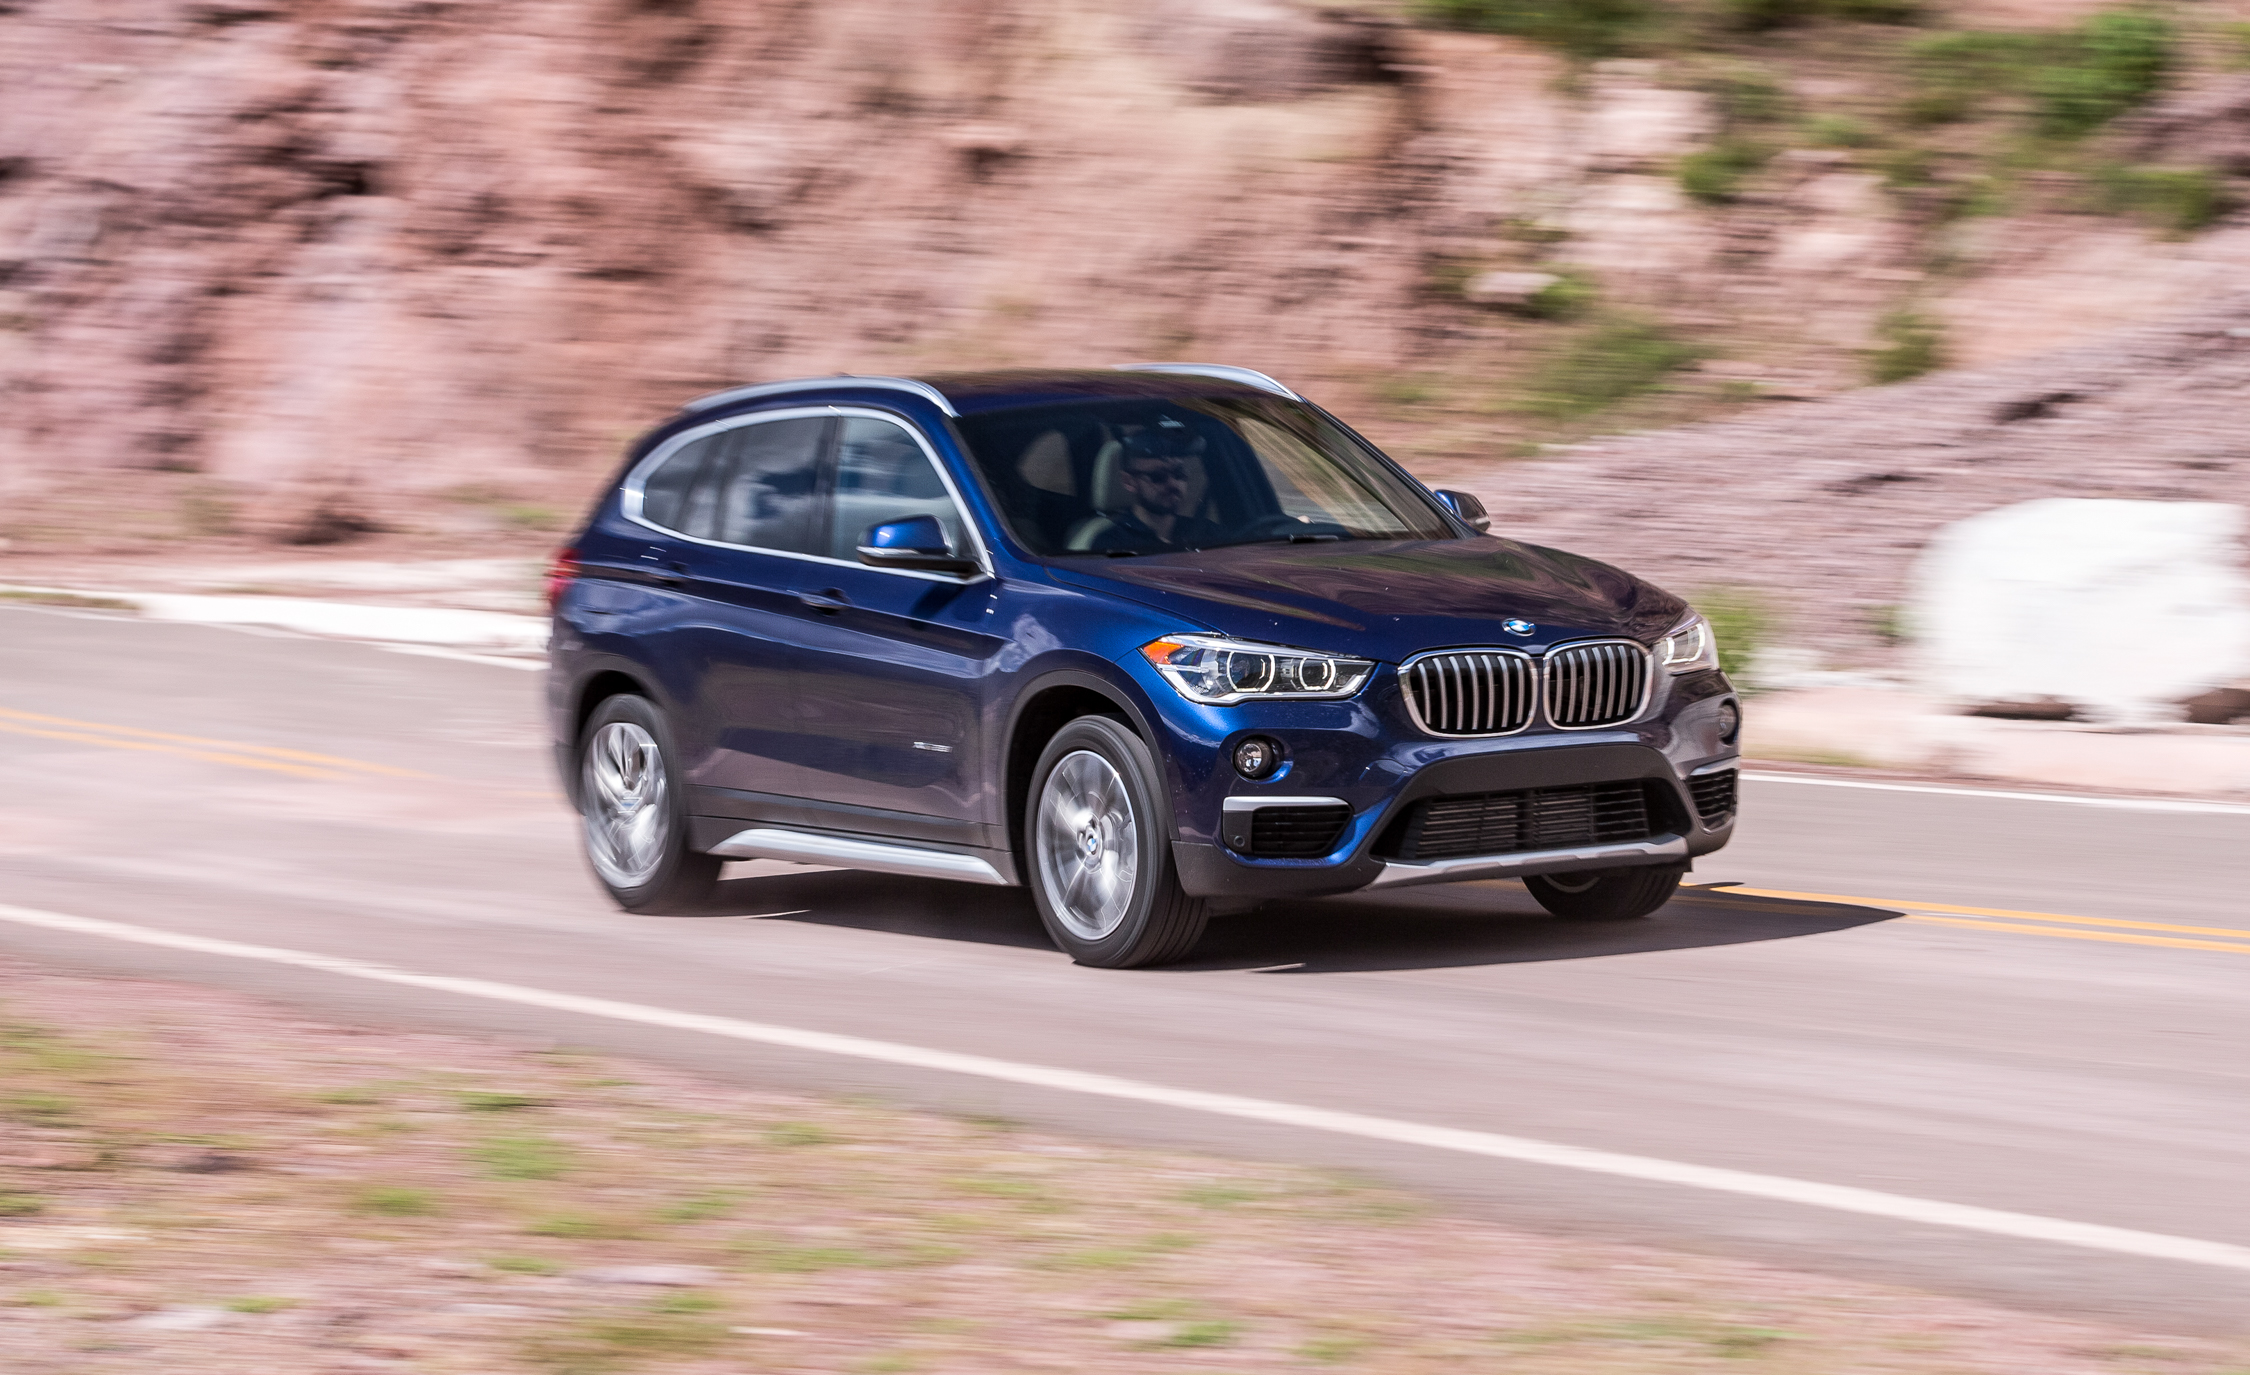 2016 BMW X1 XDrive28i Blue Metallic Test Drive Front And Side View (Photo 8 of 36)